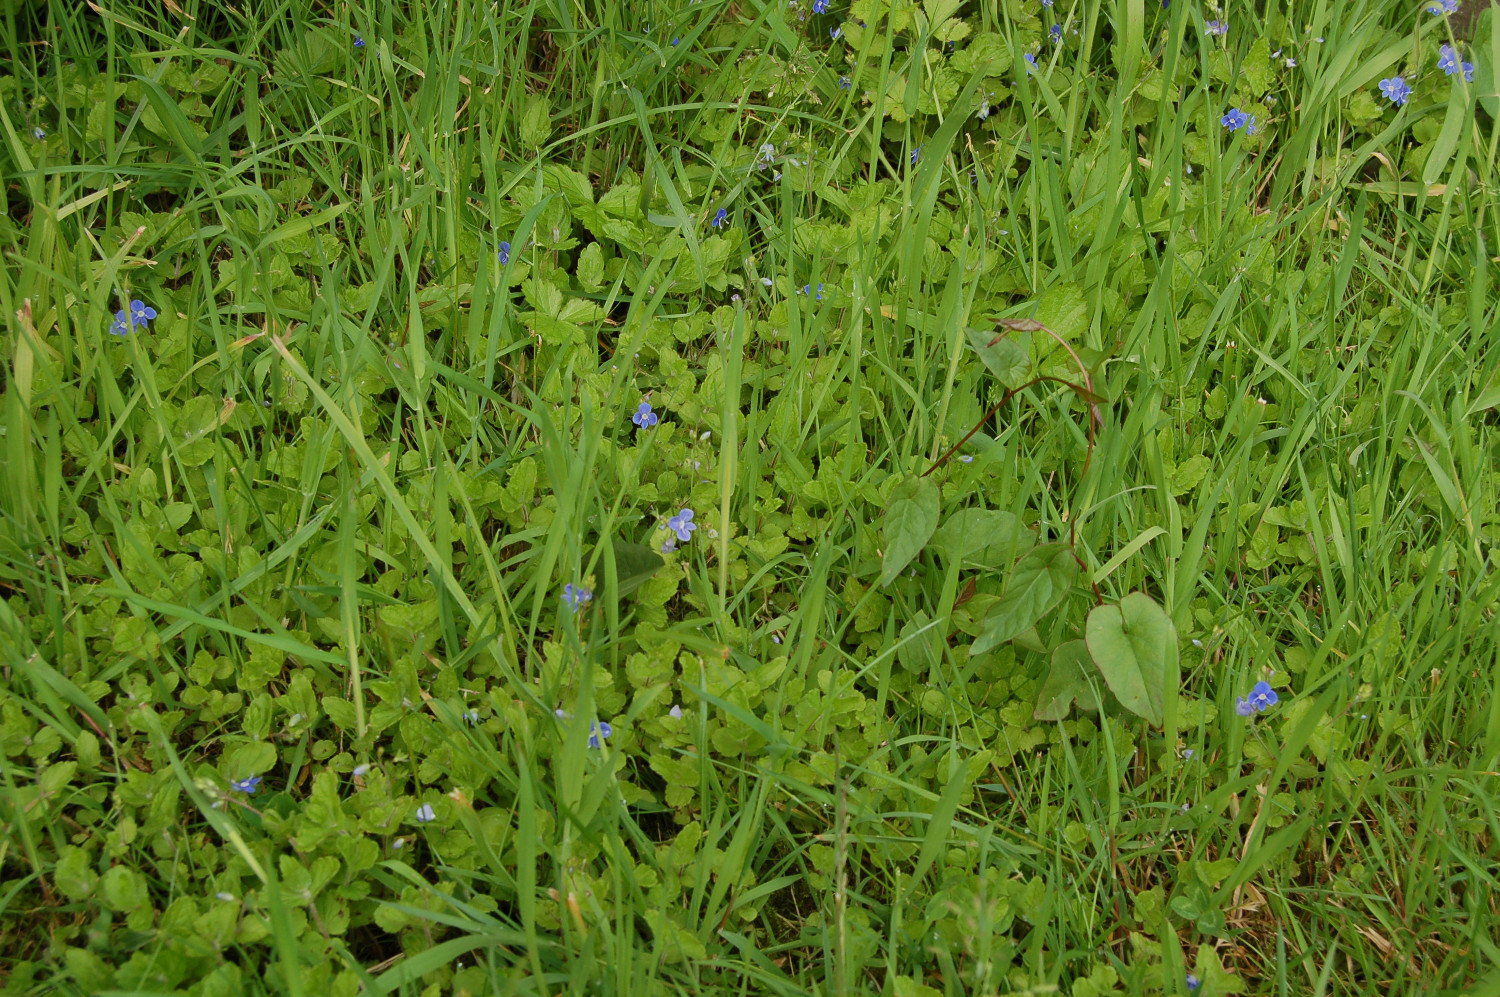 Weeds greenthumb lawn treatment service speedwell dhlflorist Image collections